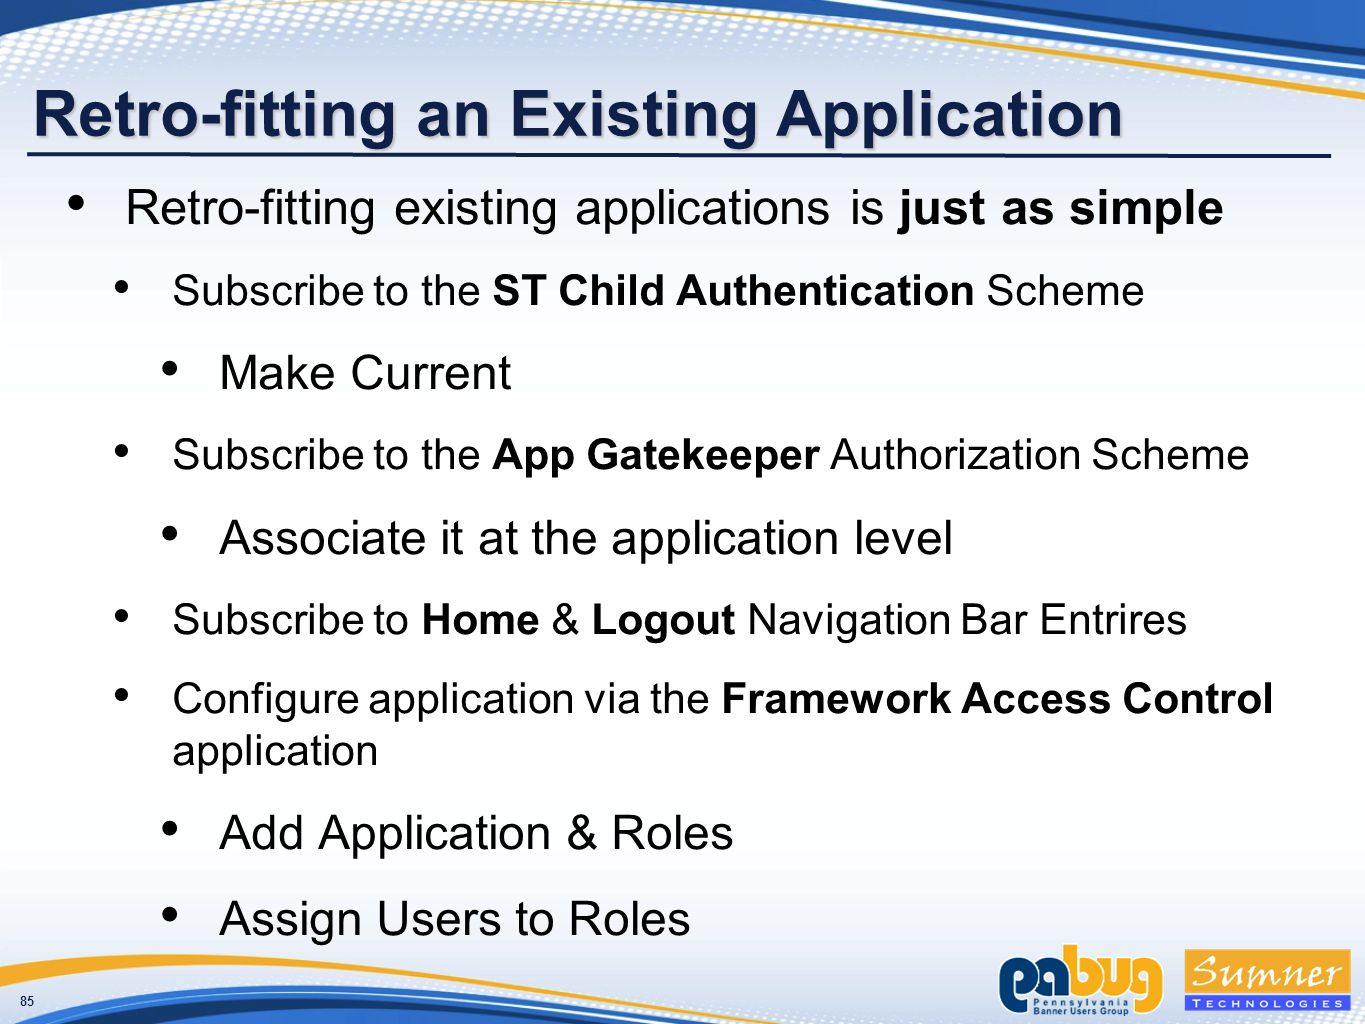 85 Retro-fitting an Existing Application Retro-fitting existing applications is just as simple Subscribe to the ST Child Authentication Scheme Make Current Subscribe to the App Gatekeeper Authorization Scheme Associate it at the application level Subscribe to Home & Logout Navigation Bar Entrires Configure application via the Framework Access Control application Add Application & Roles Assign Users to Roles